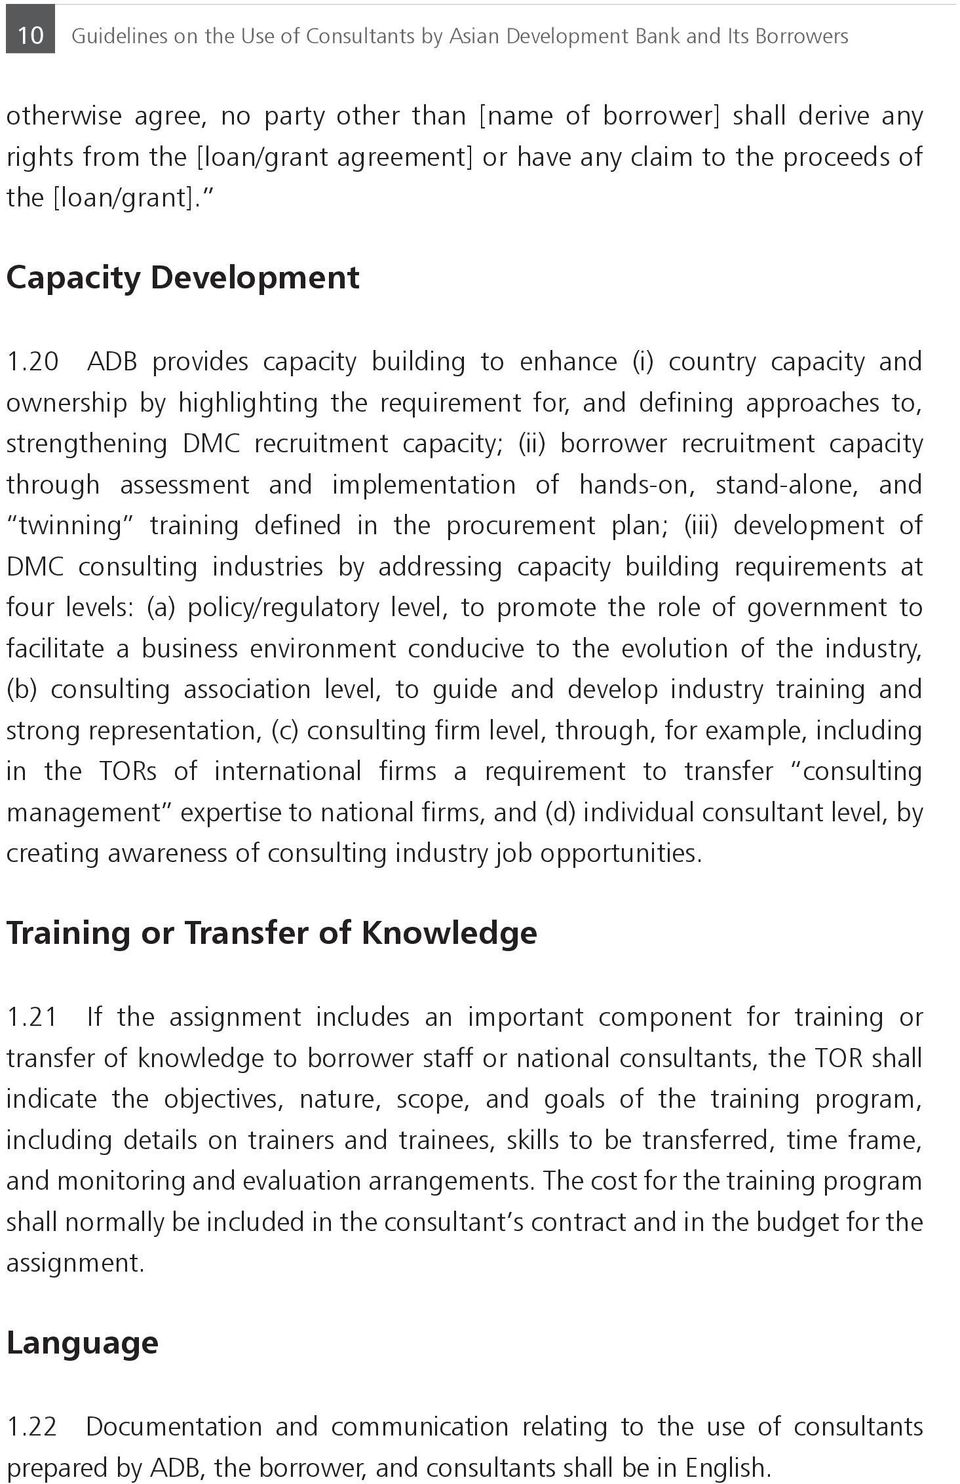 20 ADB provides capacity building to enhance (i) country capacity and ownership by highlighting the requirement for, and defining approaches to, strengthening DMC recruitment capacity; (ii) borrower